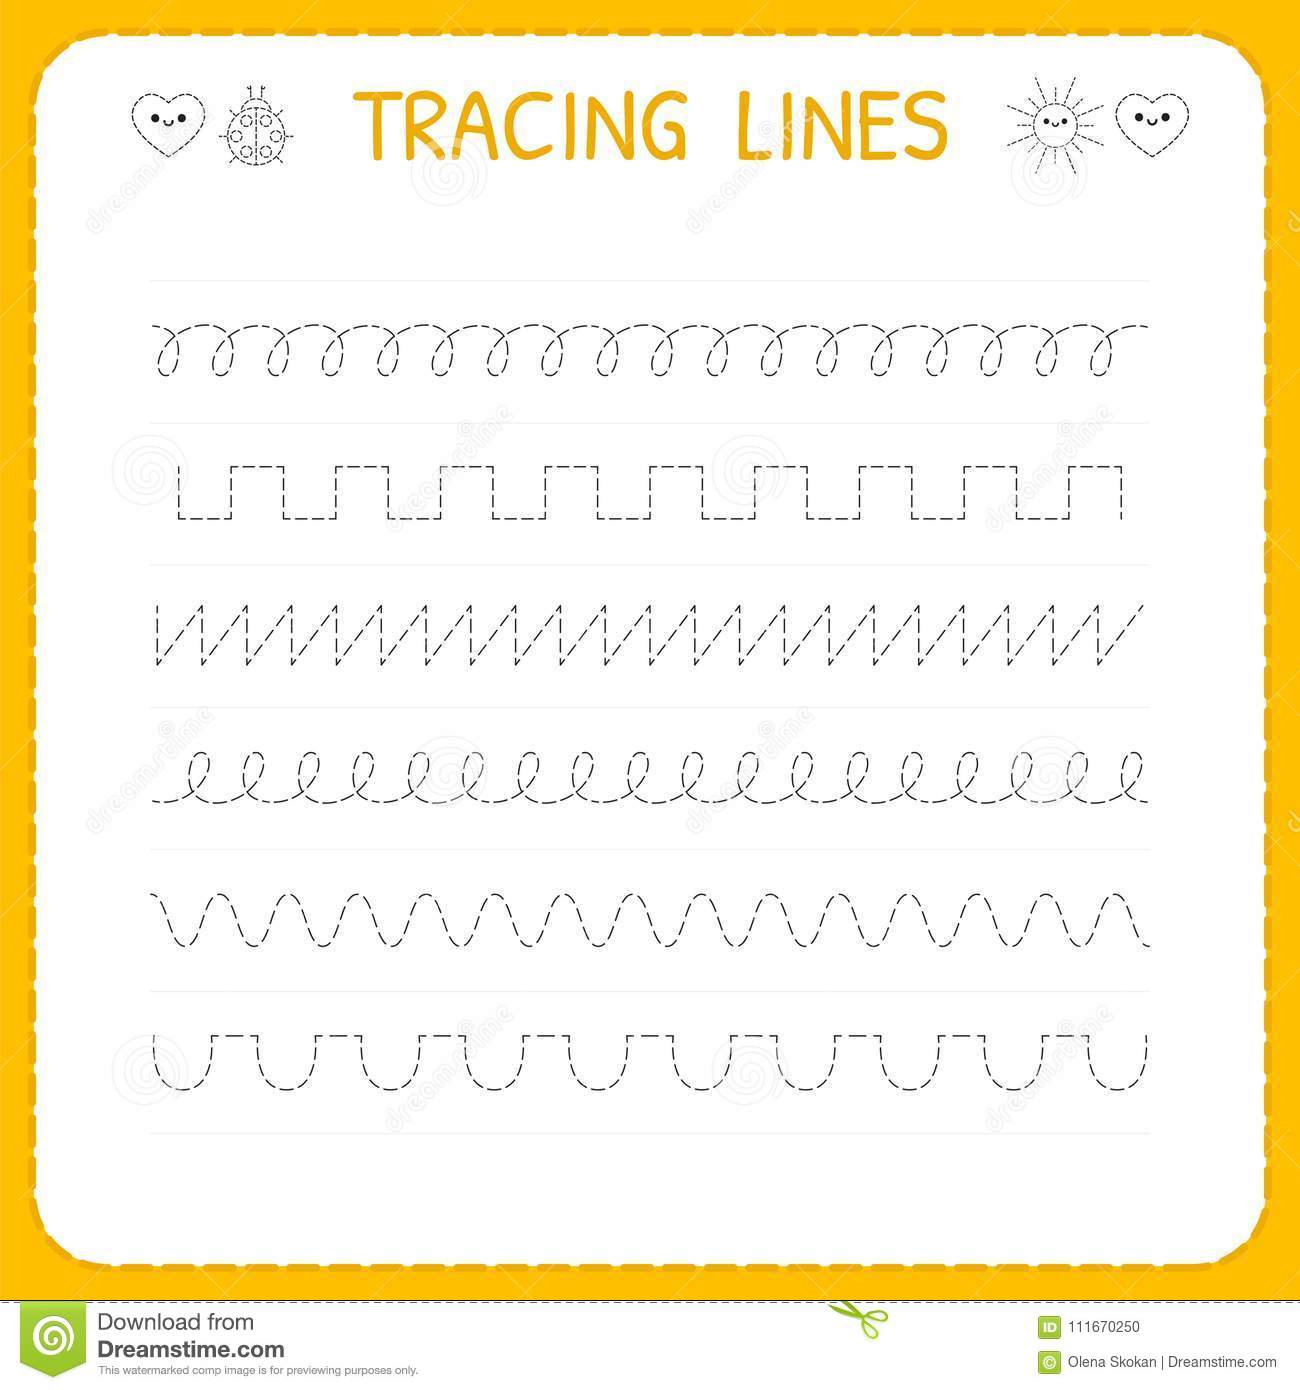 Trace Line Worksheet For Kids Basic Writing Working Pages For Children Preschool Or